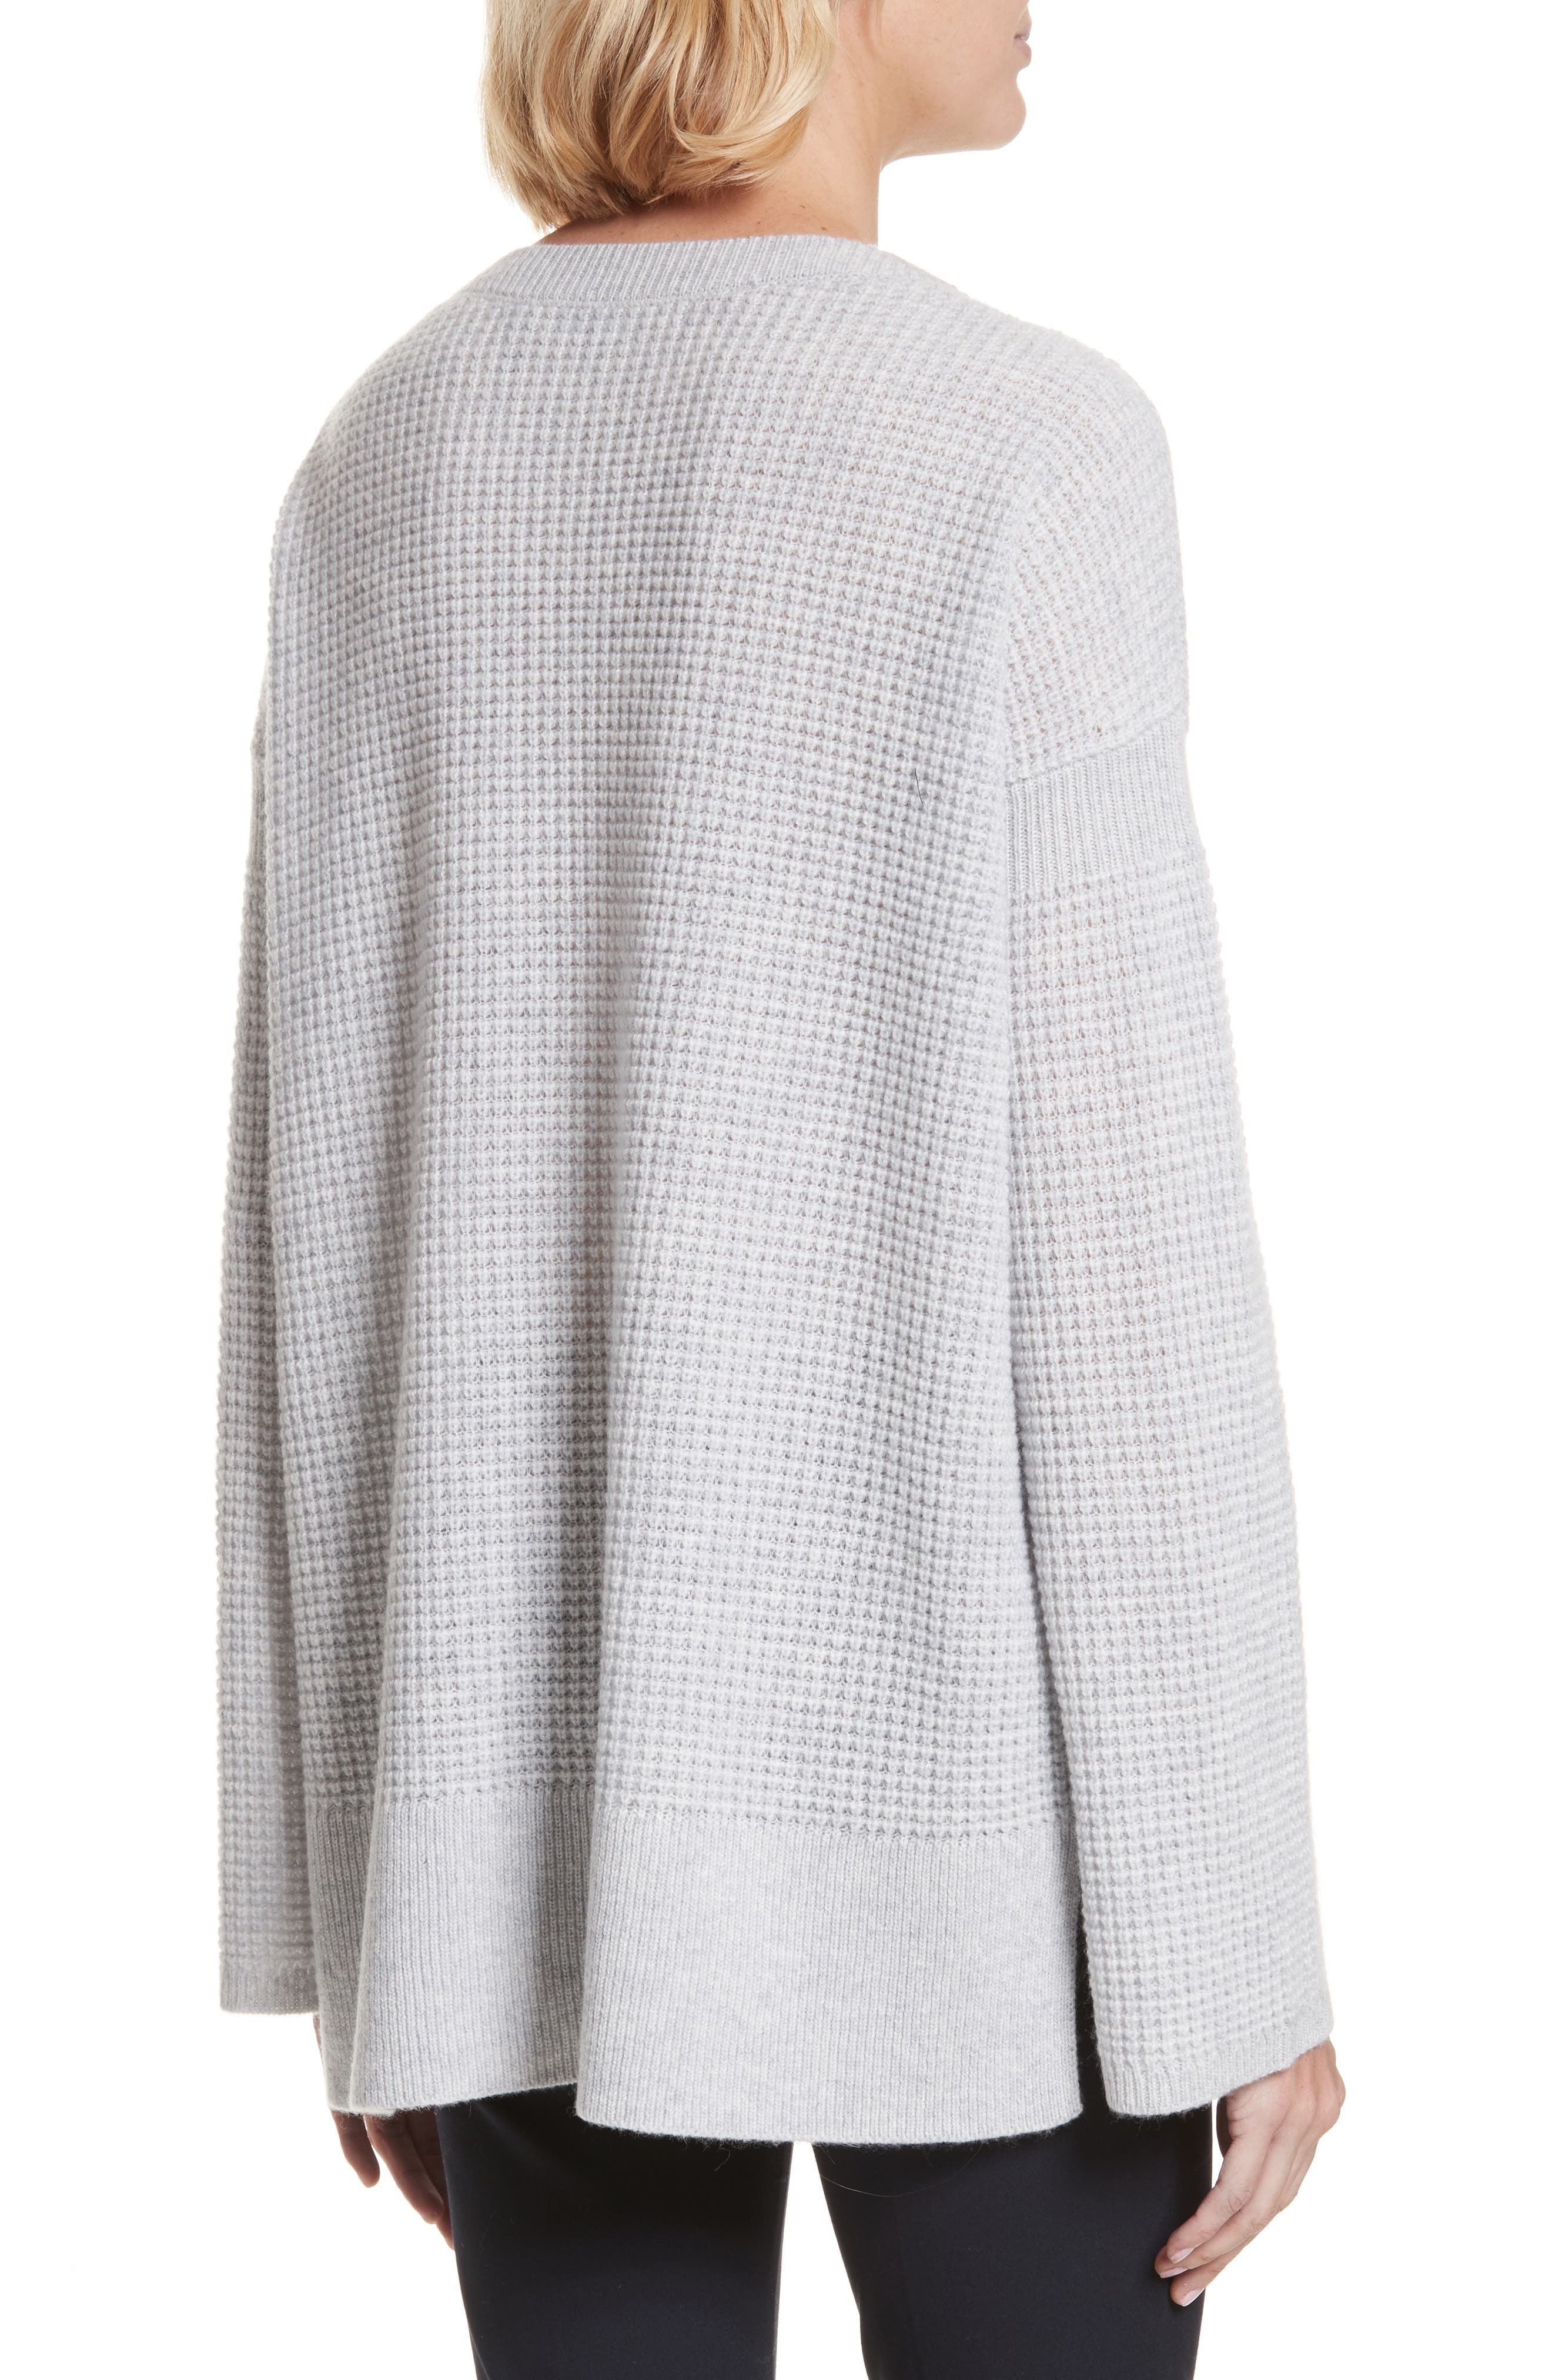 Cinch Sleeve Cashmere Sweater,                             Alternate thumbnail 2, color,                             Whale Grey